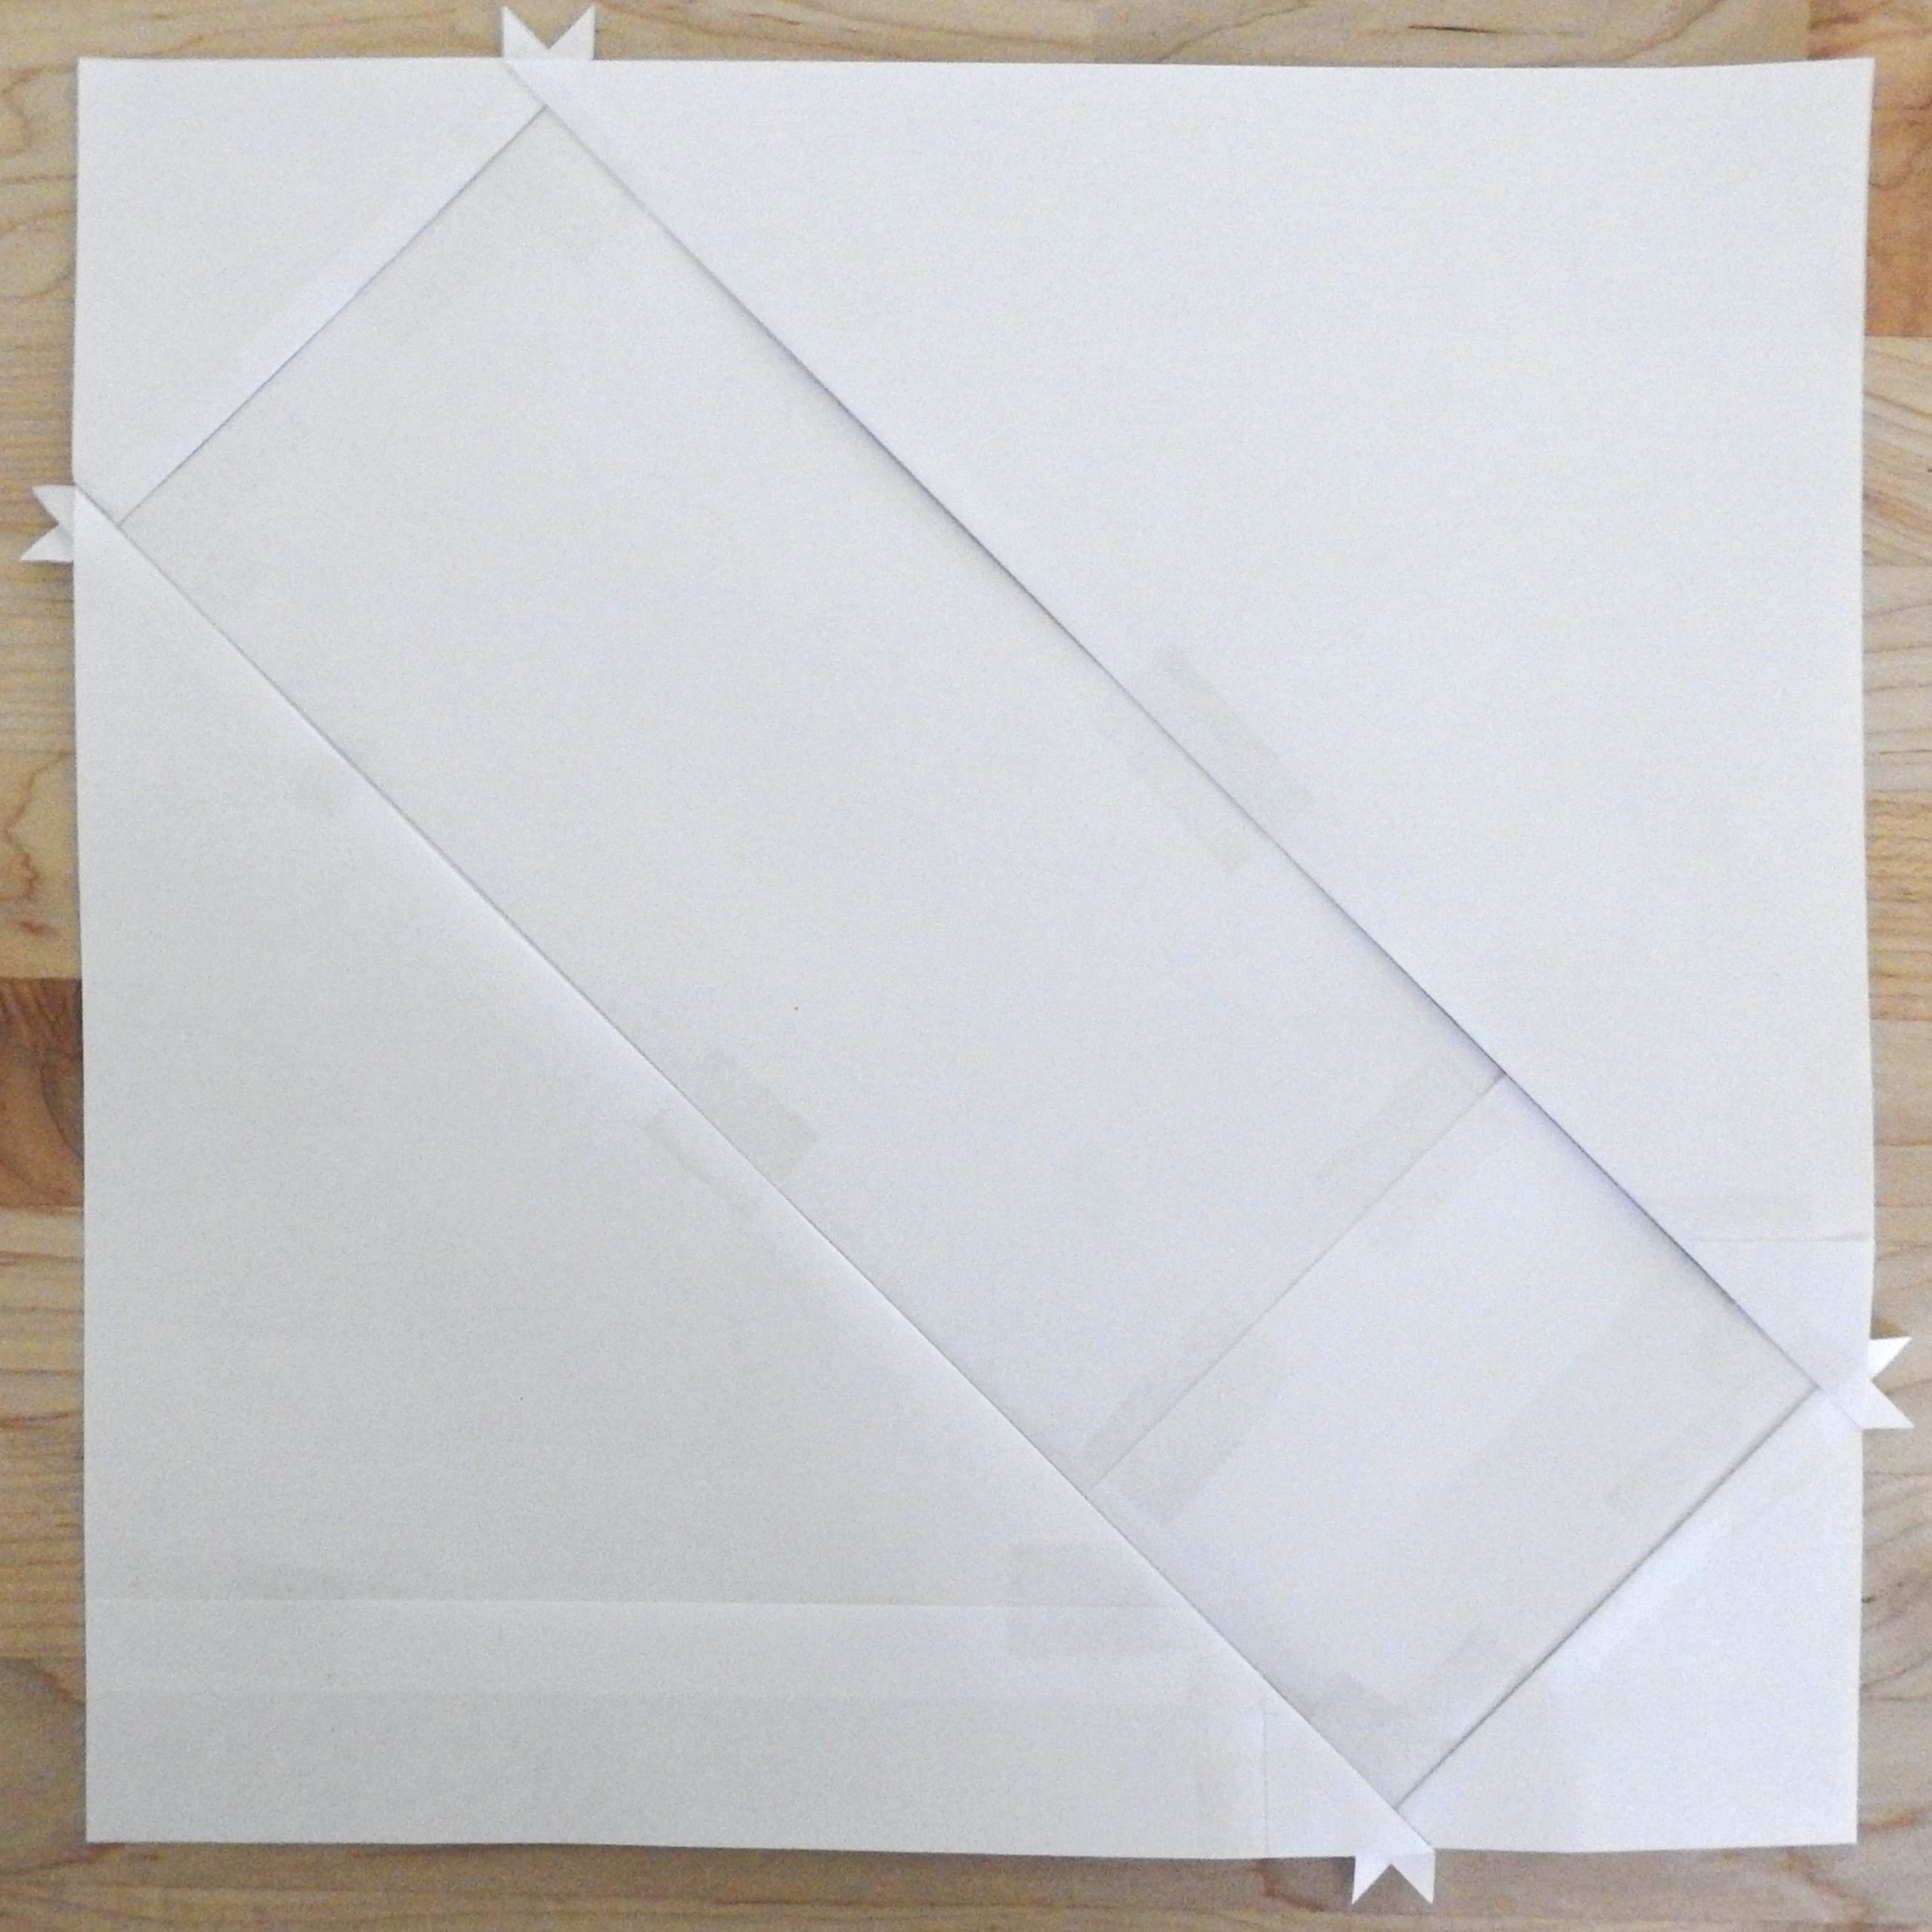 Testing Block Directions with Paper